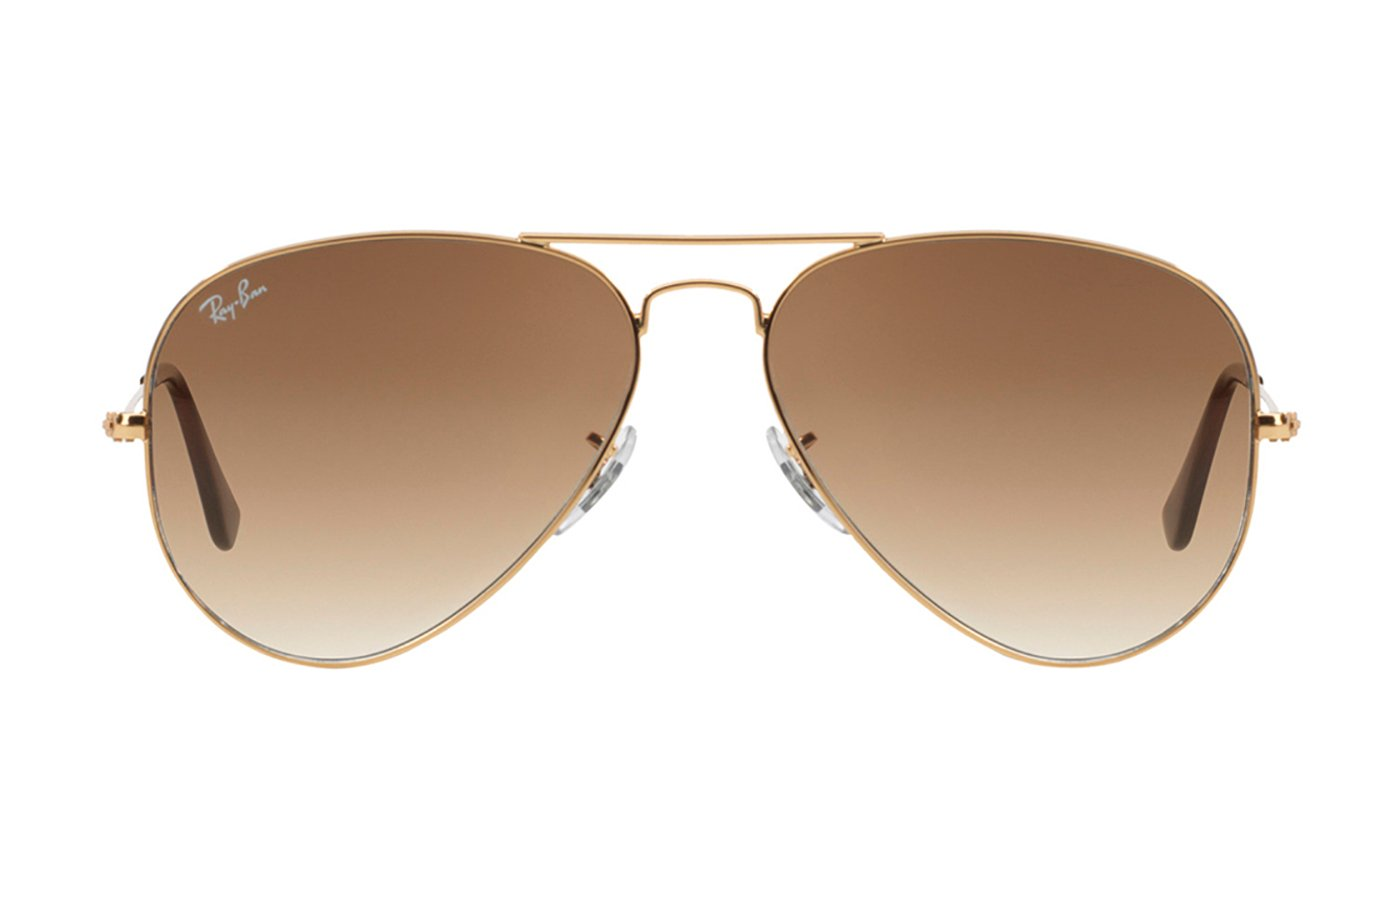 RAY-BAN AVIATOR LARGE METAL 0RB3025 58 001/51 GOLD